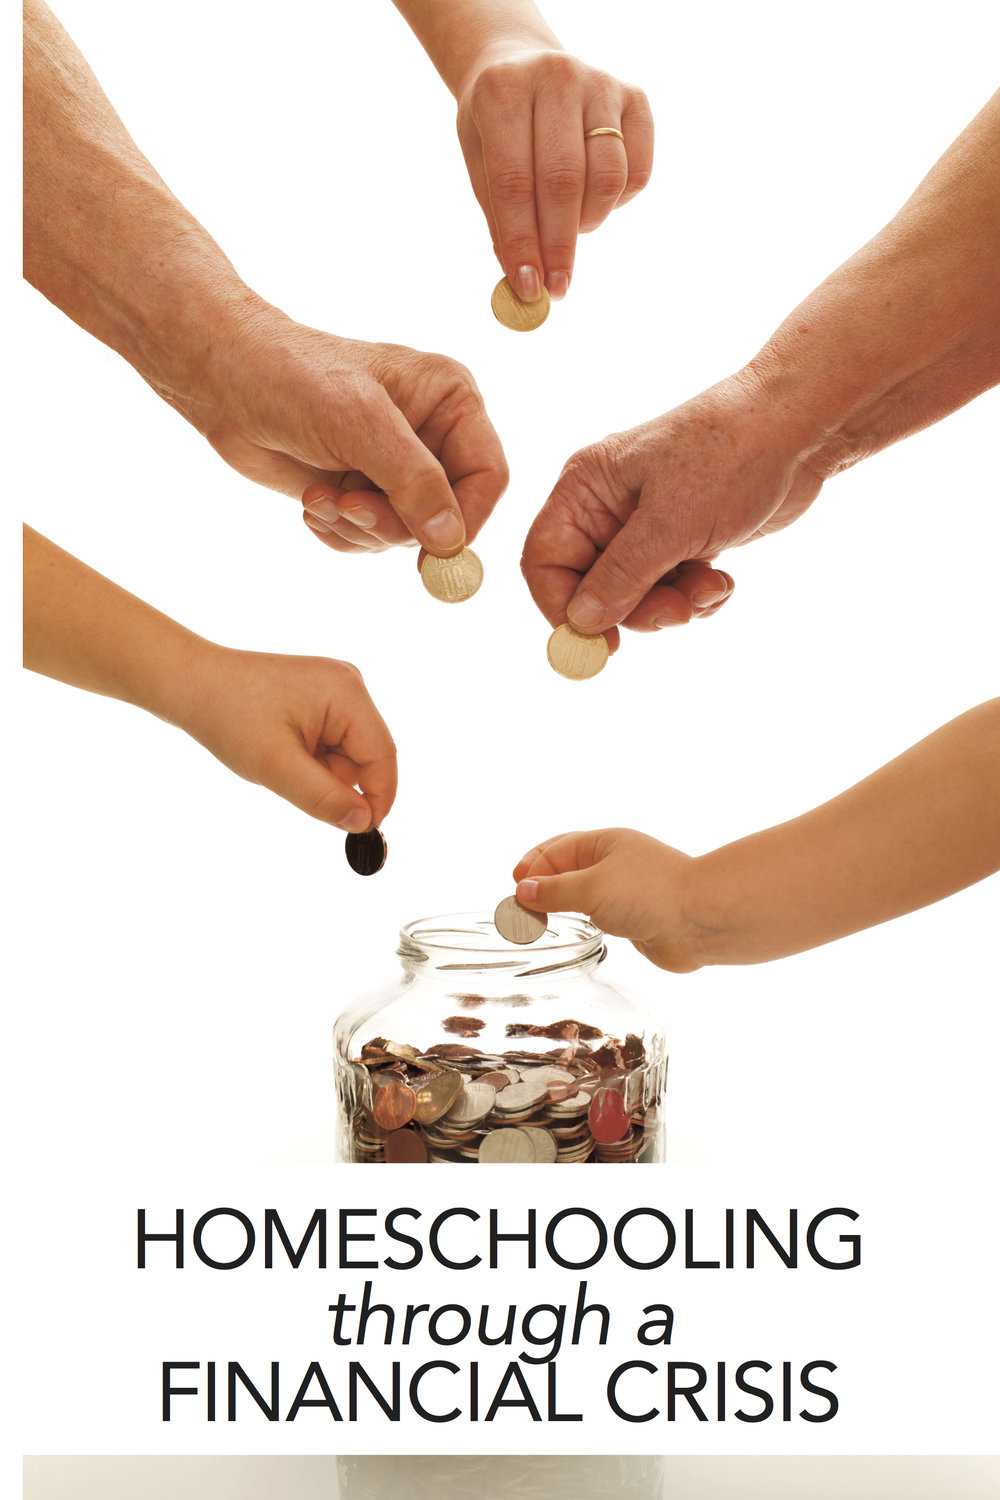 Discussion: Homeschooling Through a Financial Crisis